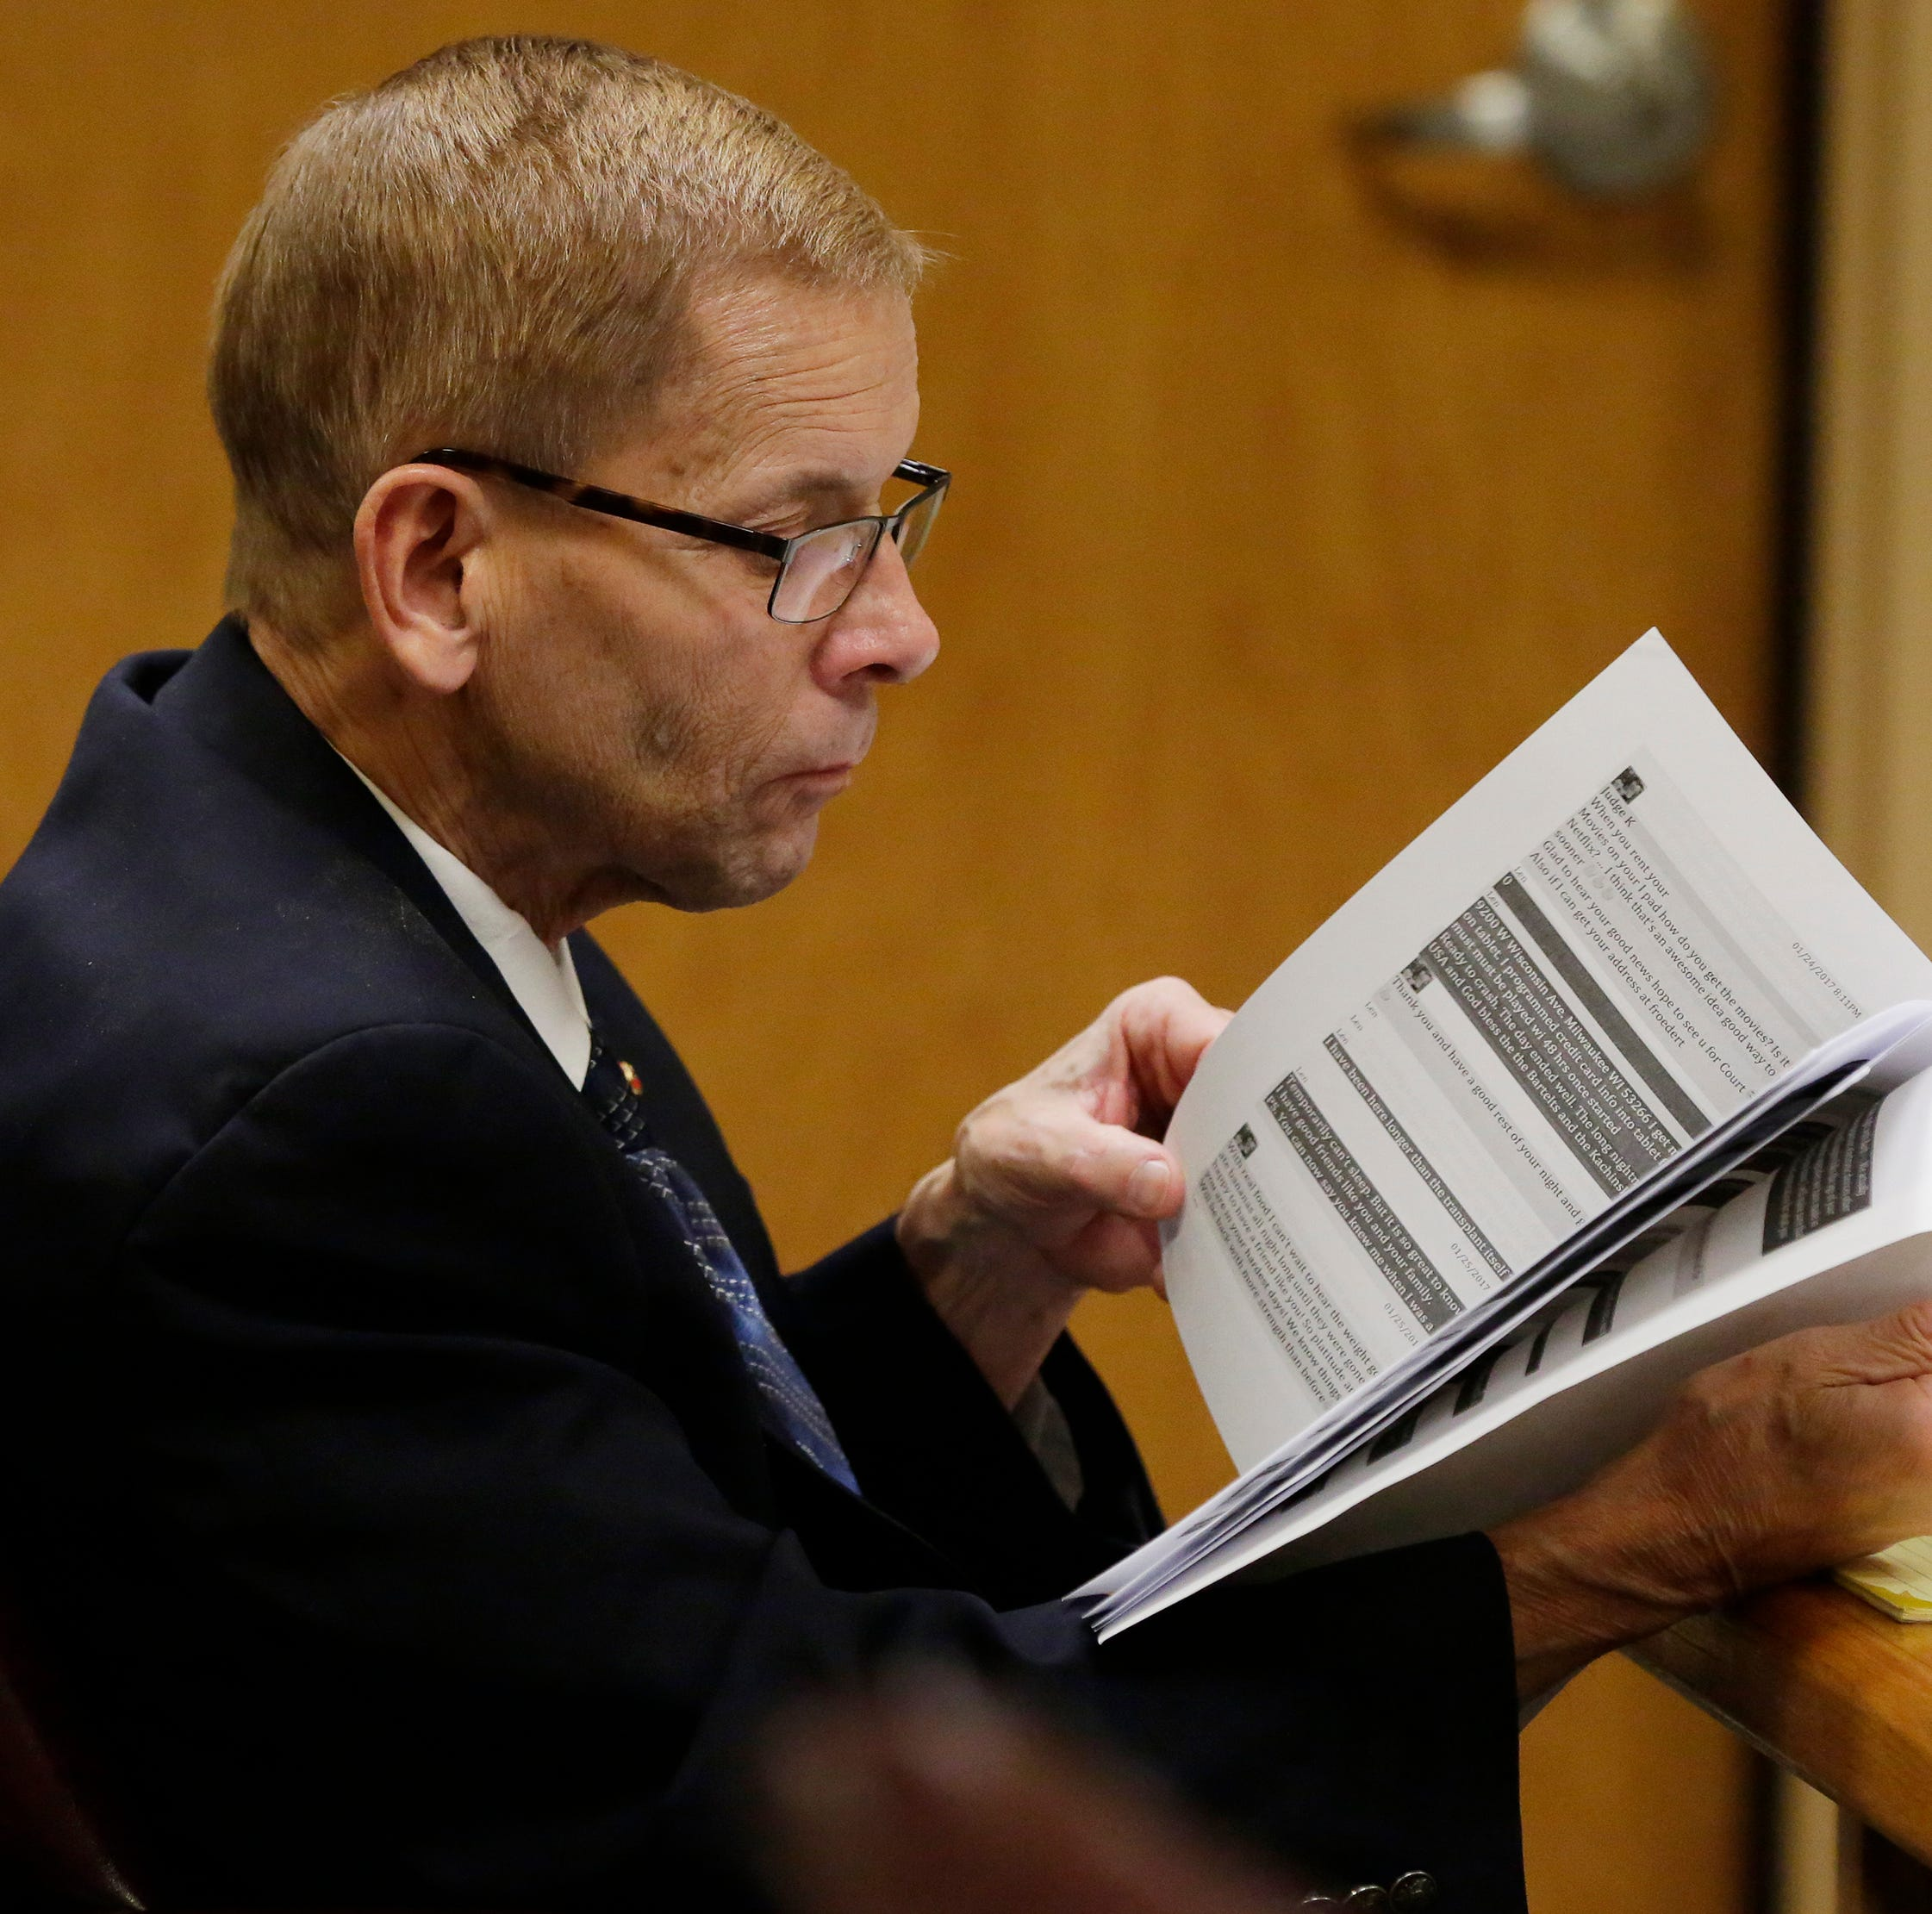 Fox Crossing Municipal Judge Len Kachinsky asks Supreme Court to lift suspension